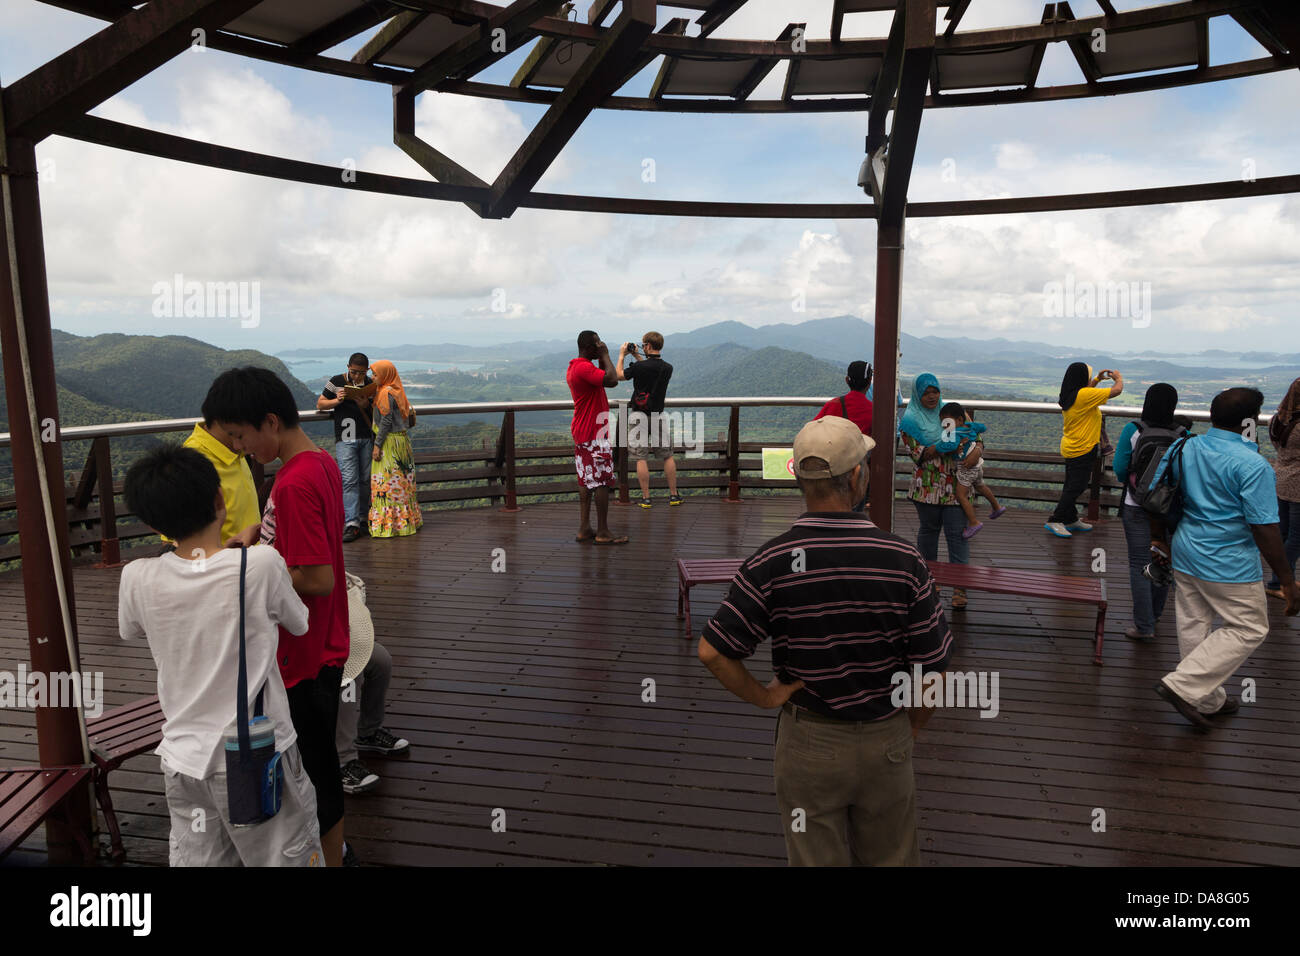 Tourists enjoying the view from the  viewing platform in Langkawi, the main resort island in Malaysia Stock Photo